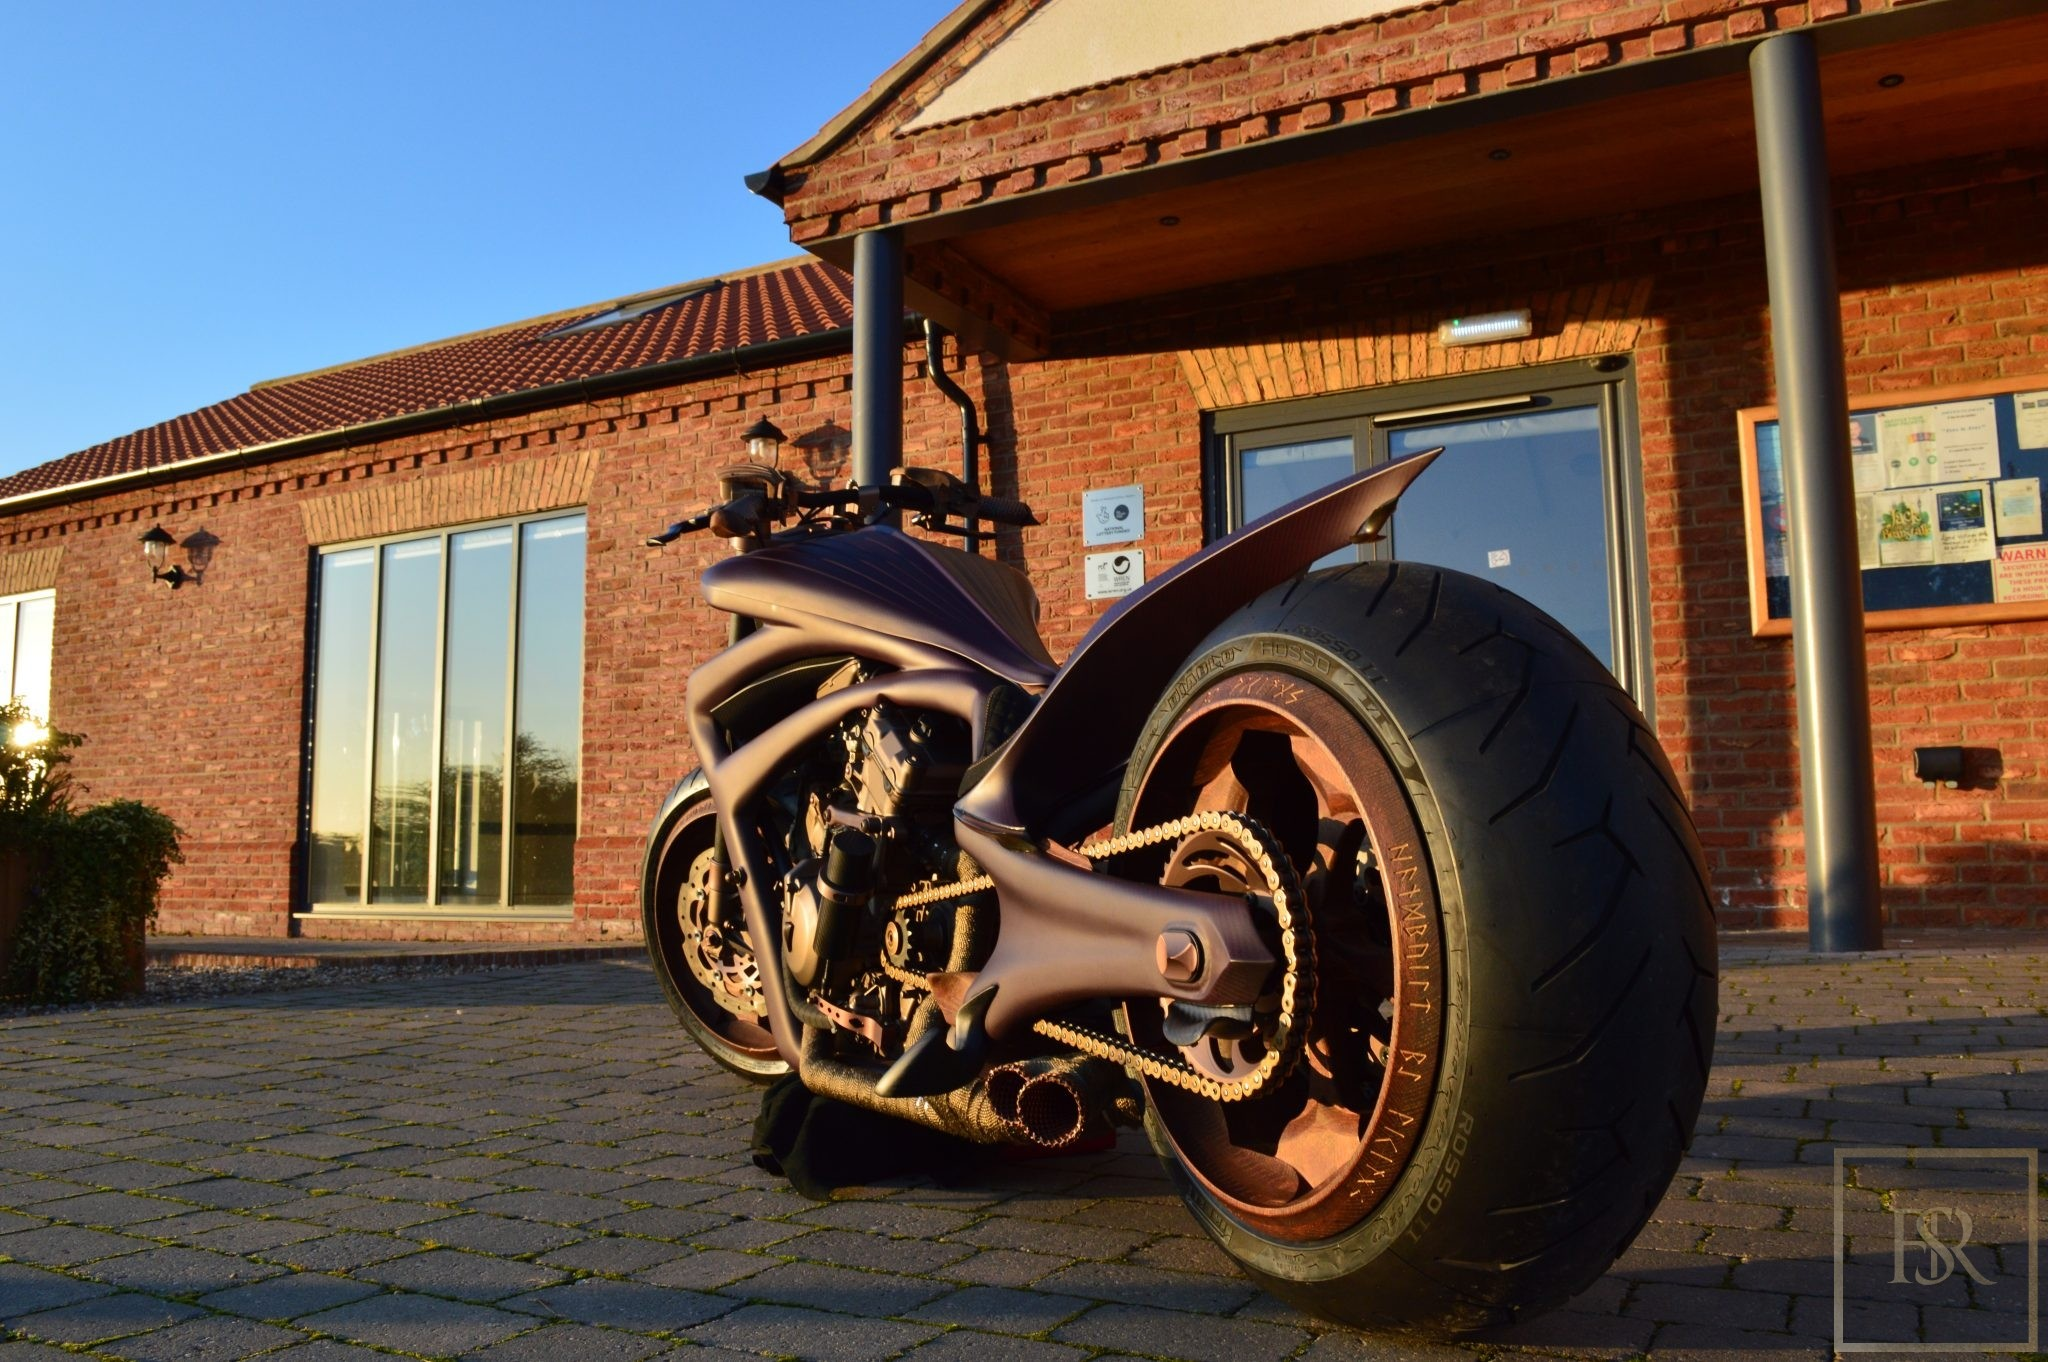 Only 1 in the world Fully Carbon Motorcycle - ONE OFF for sale For Super Rich